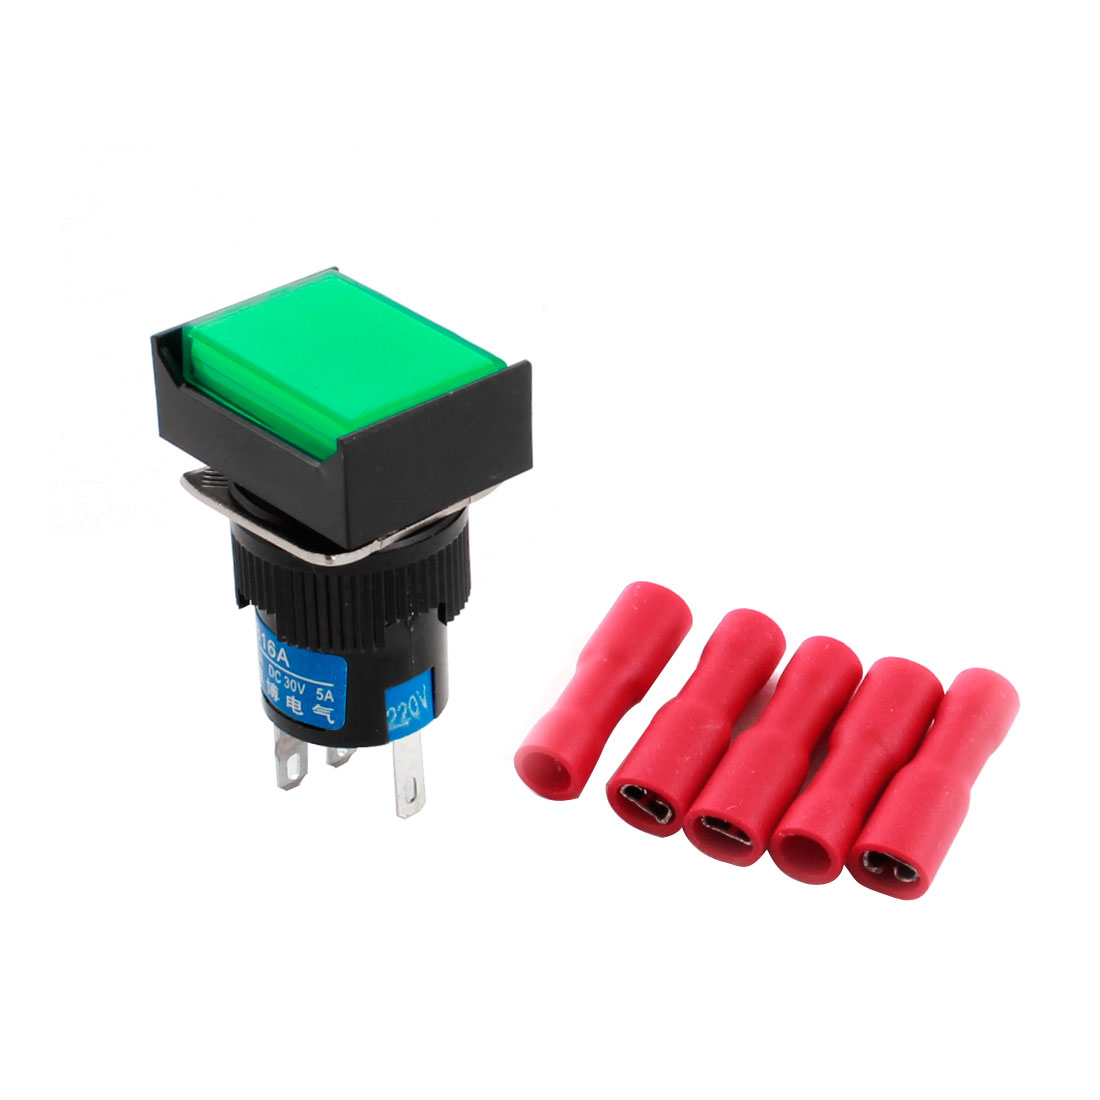 AC 220V Green Pilot Lamp Light 16mm Threaded 5Pins Panel Mounted SPDT Rectangle Head Non Locking Pushbutton Switch + 5pcs Female Terminals